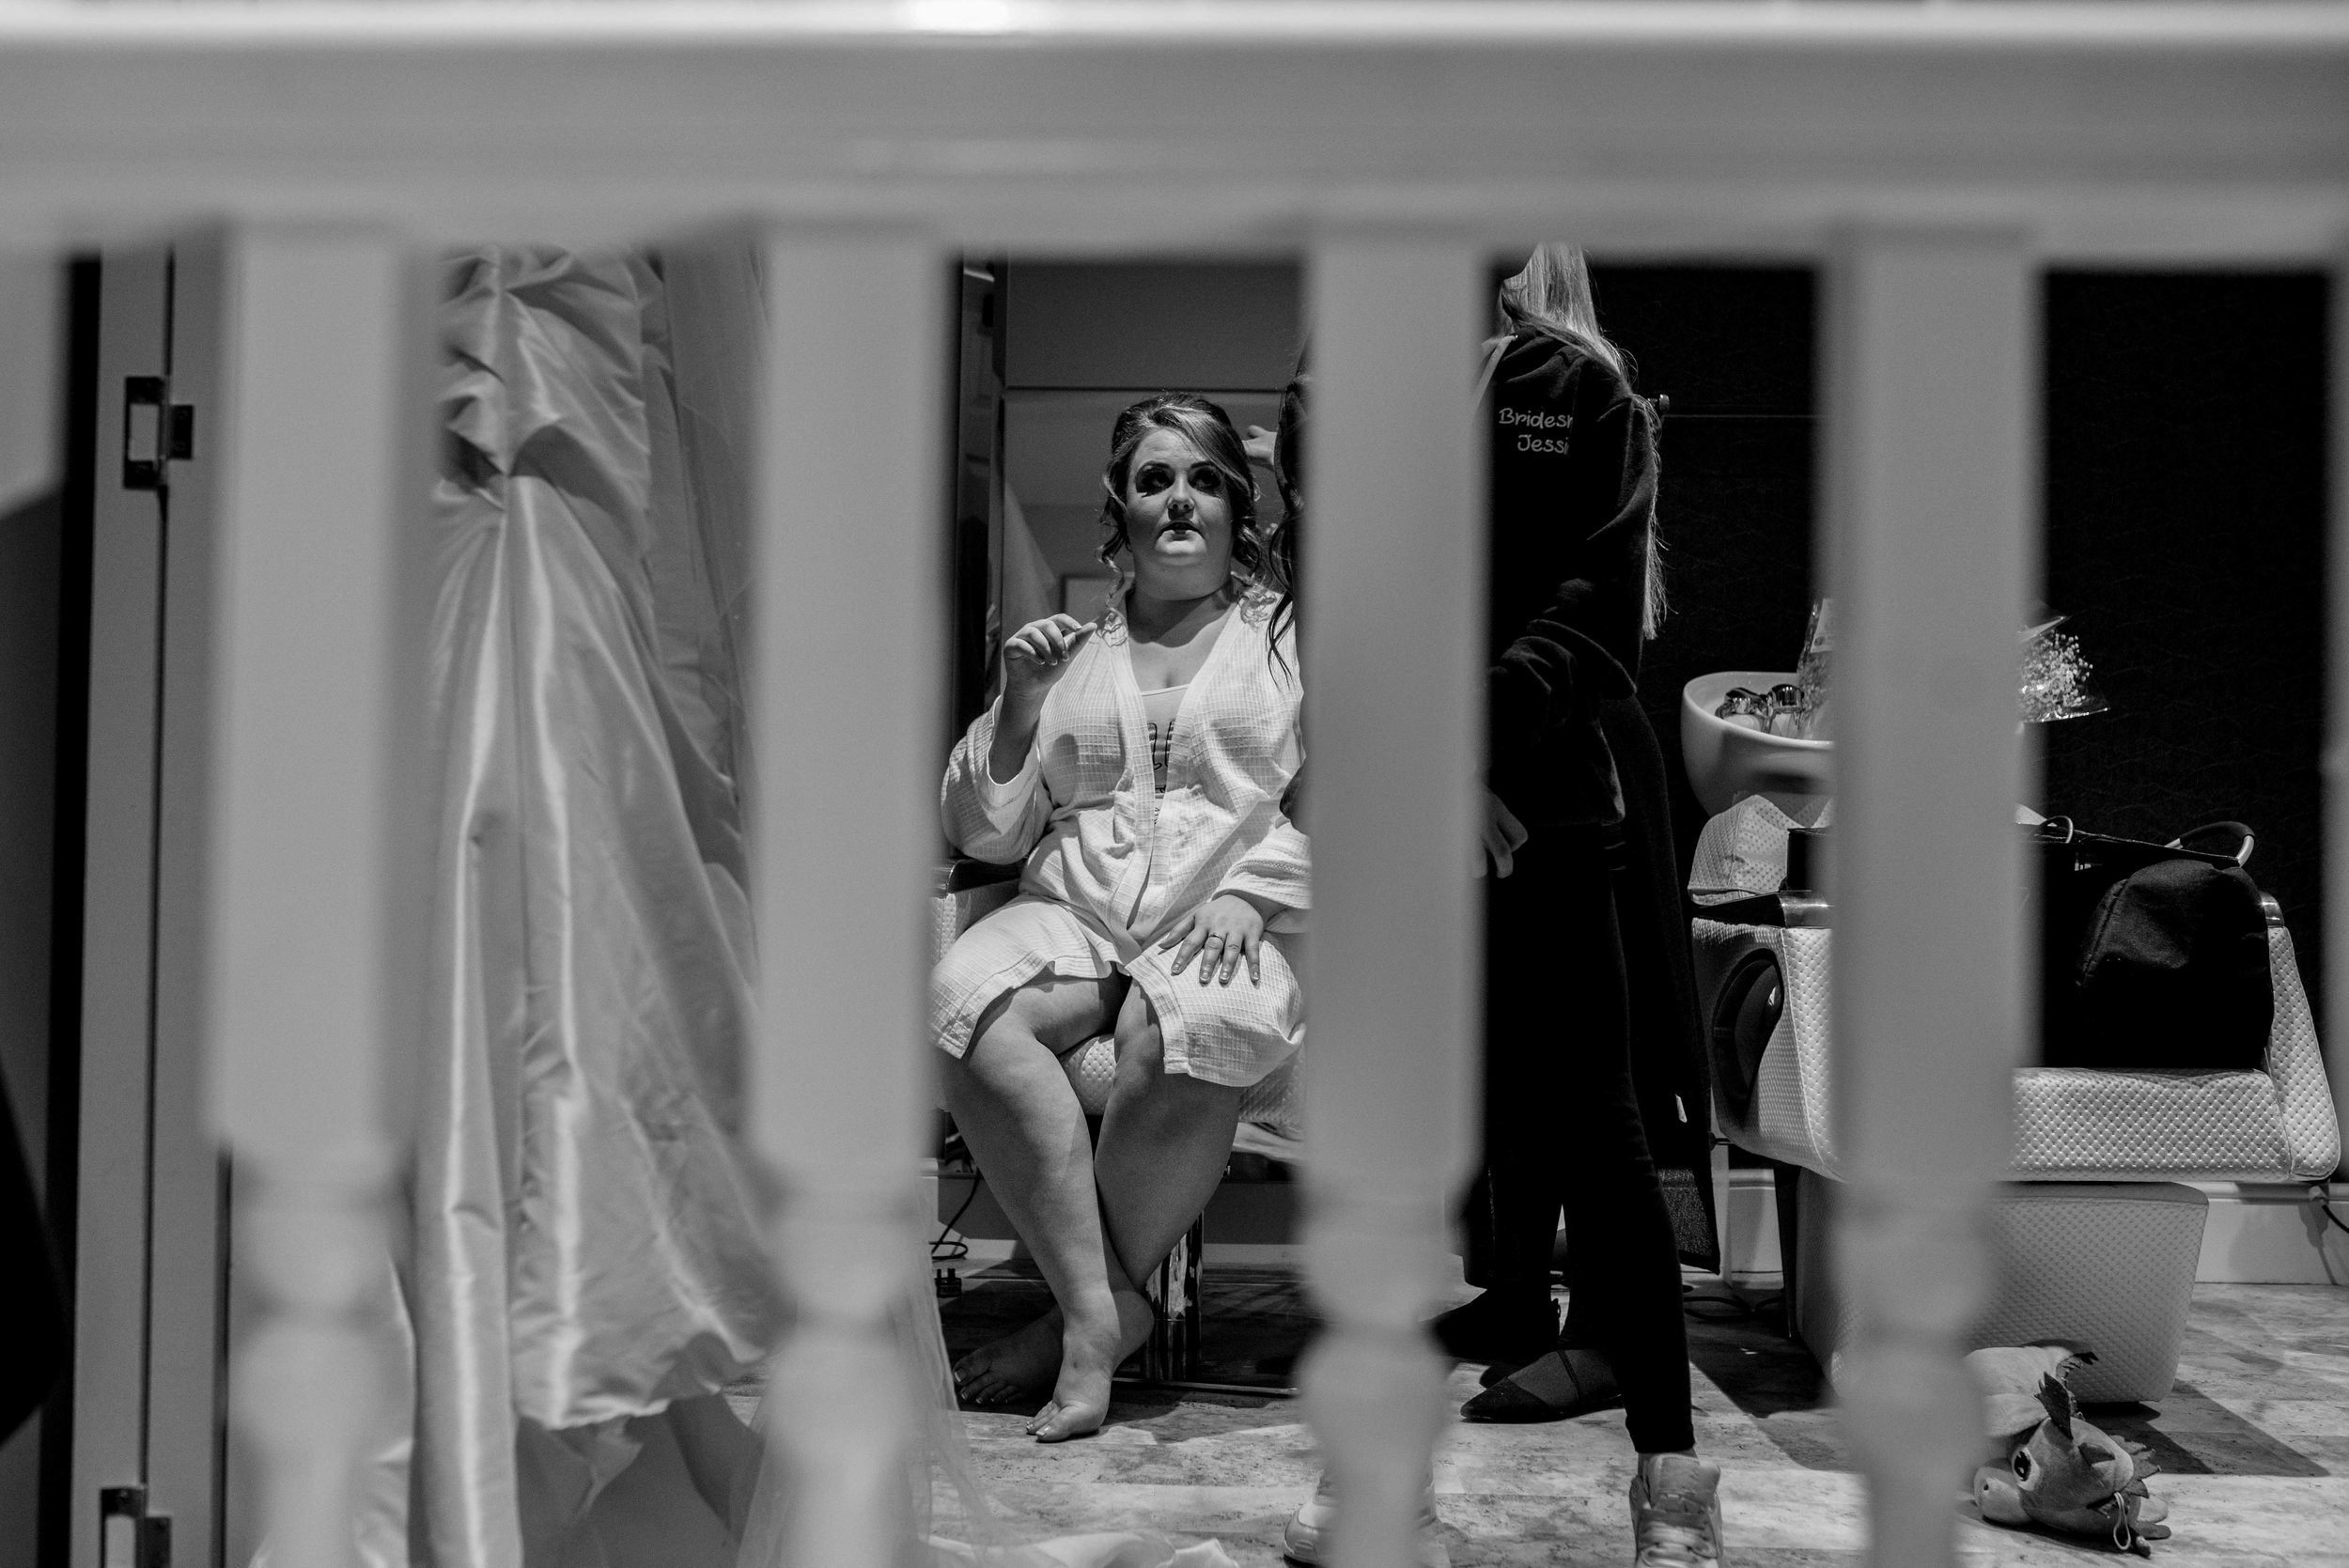 The bride is seen through gaps in the bannister rail while she gets ready for her wedding.